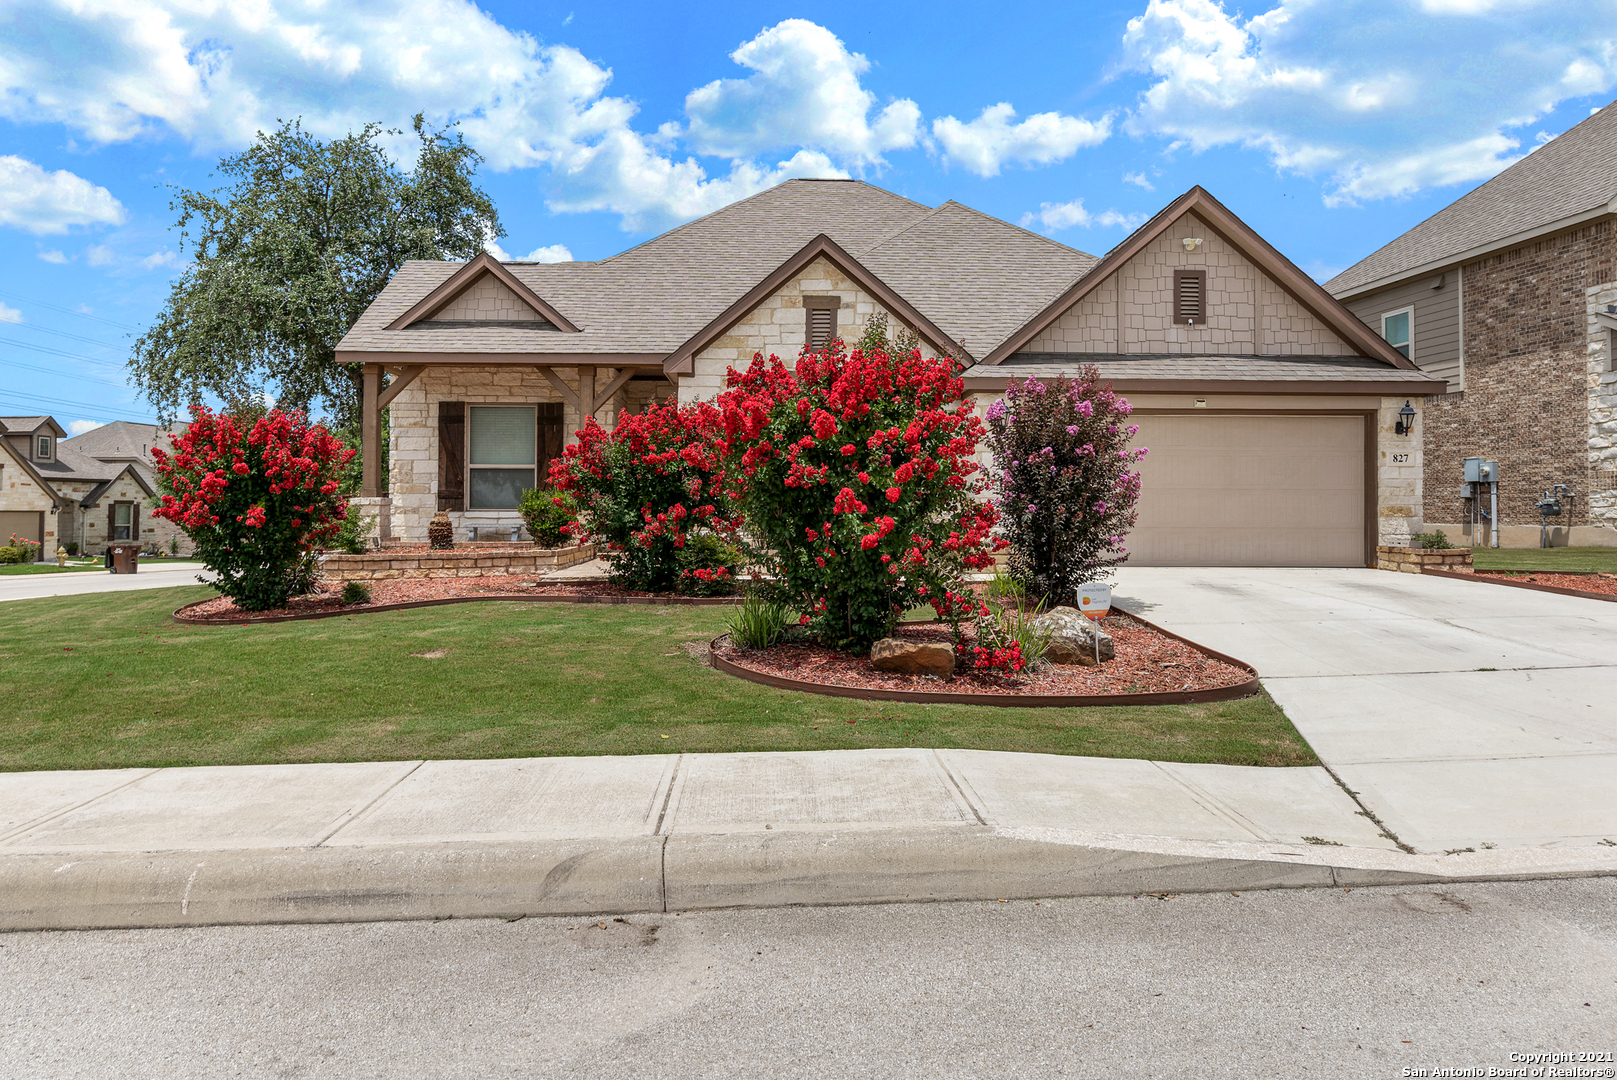 """Showings start 7/16/2021, Open house on 7/16 from 11am-3pm, and Open house on 7/18 from 12pm-3pm.  Beautiful home on a corner lot with gorgeous landscaping located in coveted Potranco Run. Open kitchen concept with breakfast bar/island, tile flooring and travertine backsplash, 42"""" cabinets, gas cooktop, oven, microwave, and breakfast nook. Family room and formal dining room is just off the kitchen, as well as a study/office nook.  Master bedroom  includes a full master bath with two vanities, a garden tub and separate shower.  Three secondary bedrooms are a"""